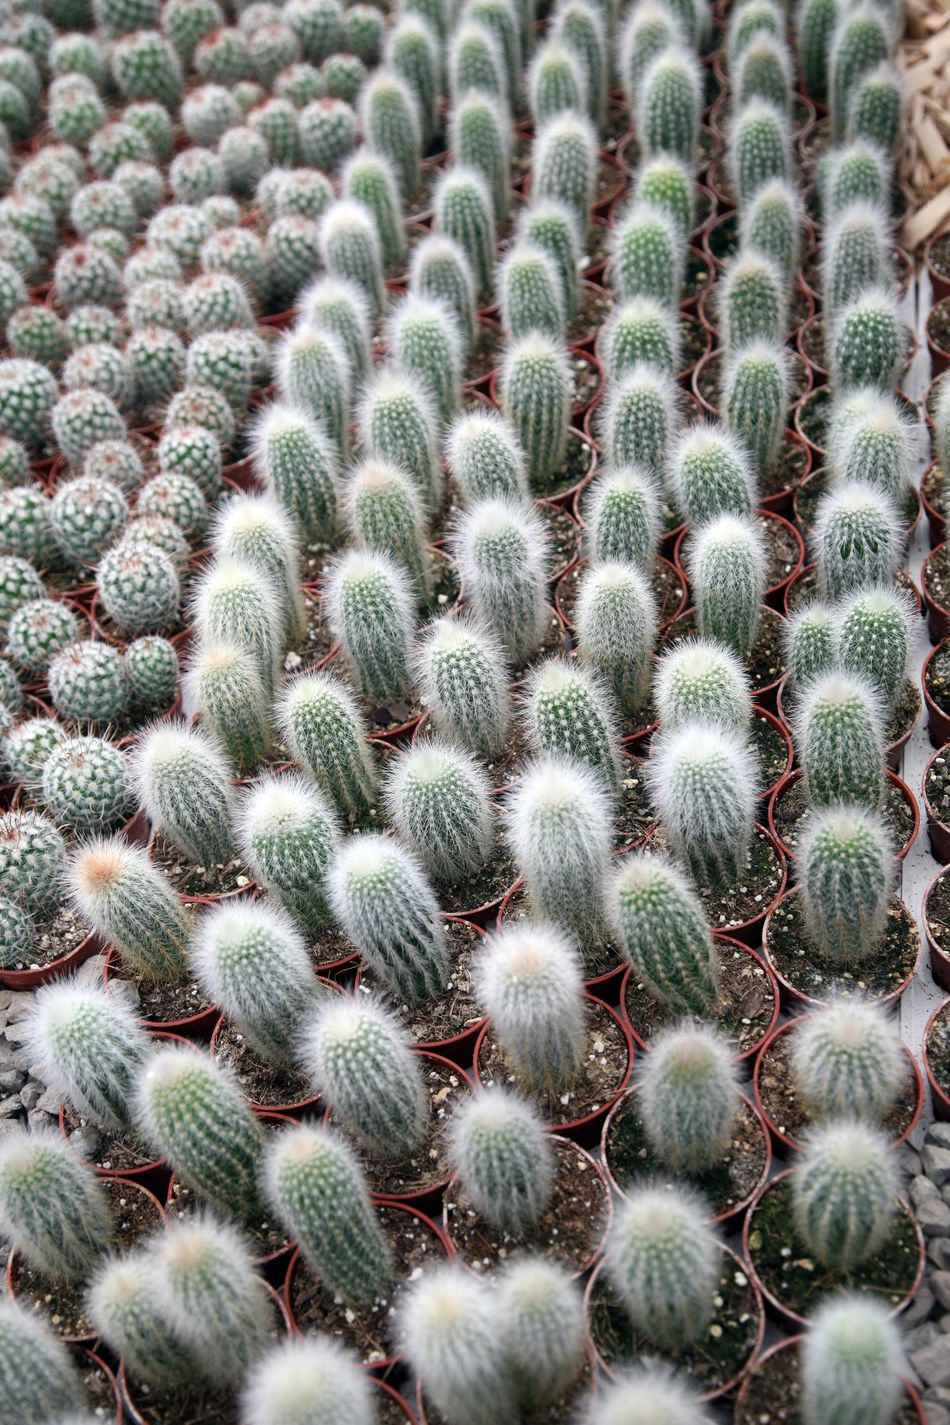 Cactus Beauty In Nature Botanic Botanical Botany Cacti Desert Exotic Flora Floral Garden Green Growth Nature Needle Plant Prickly Spike Spine Succulent Thorn Tropical Wild